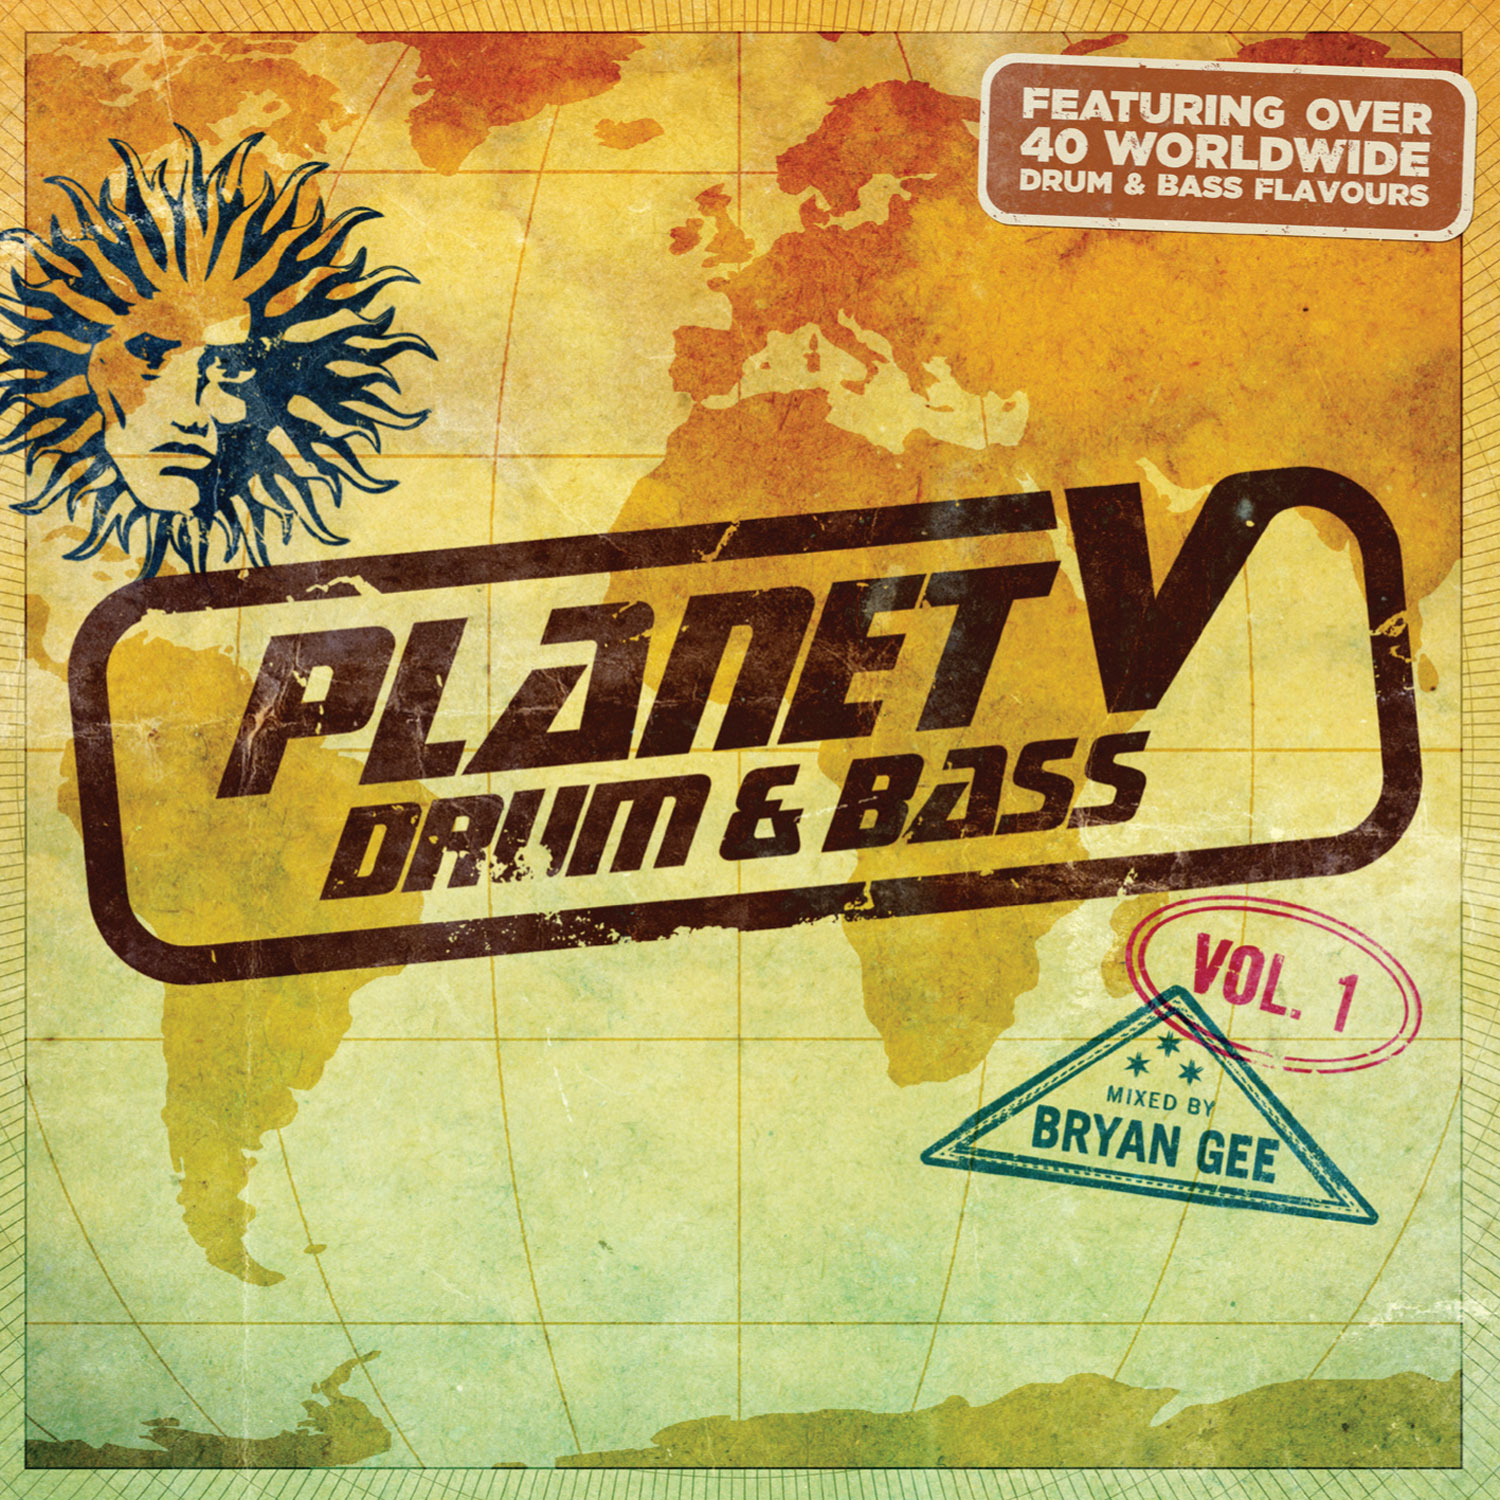 Bryan Gee/PLANET V DRUM & BASS VOL 1 DCD